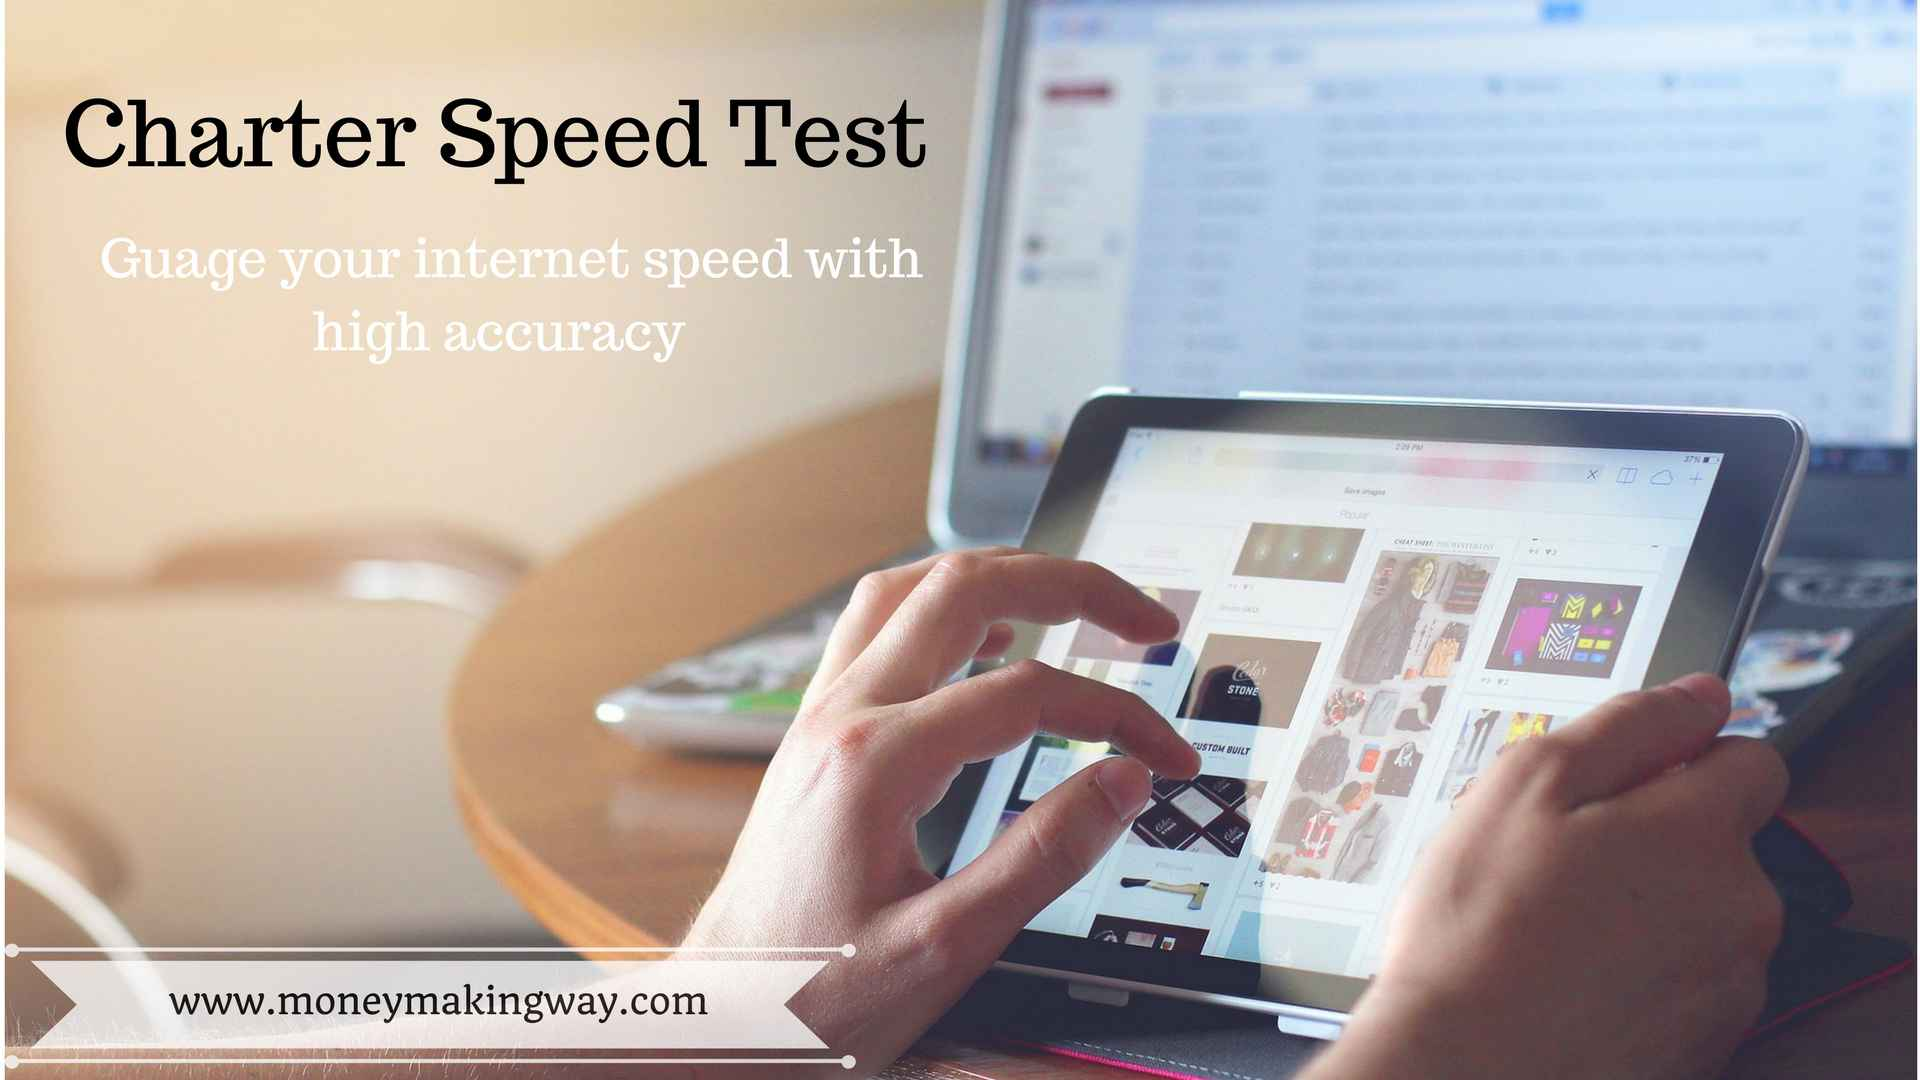 Charter Speed Test A Free Tool To Check Internet Speed Sheknowsfinance